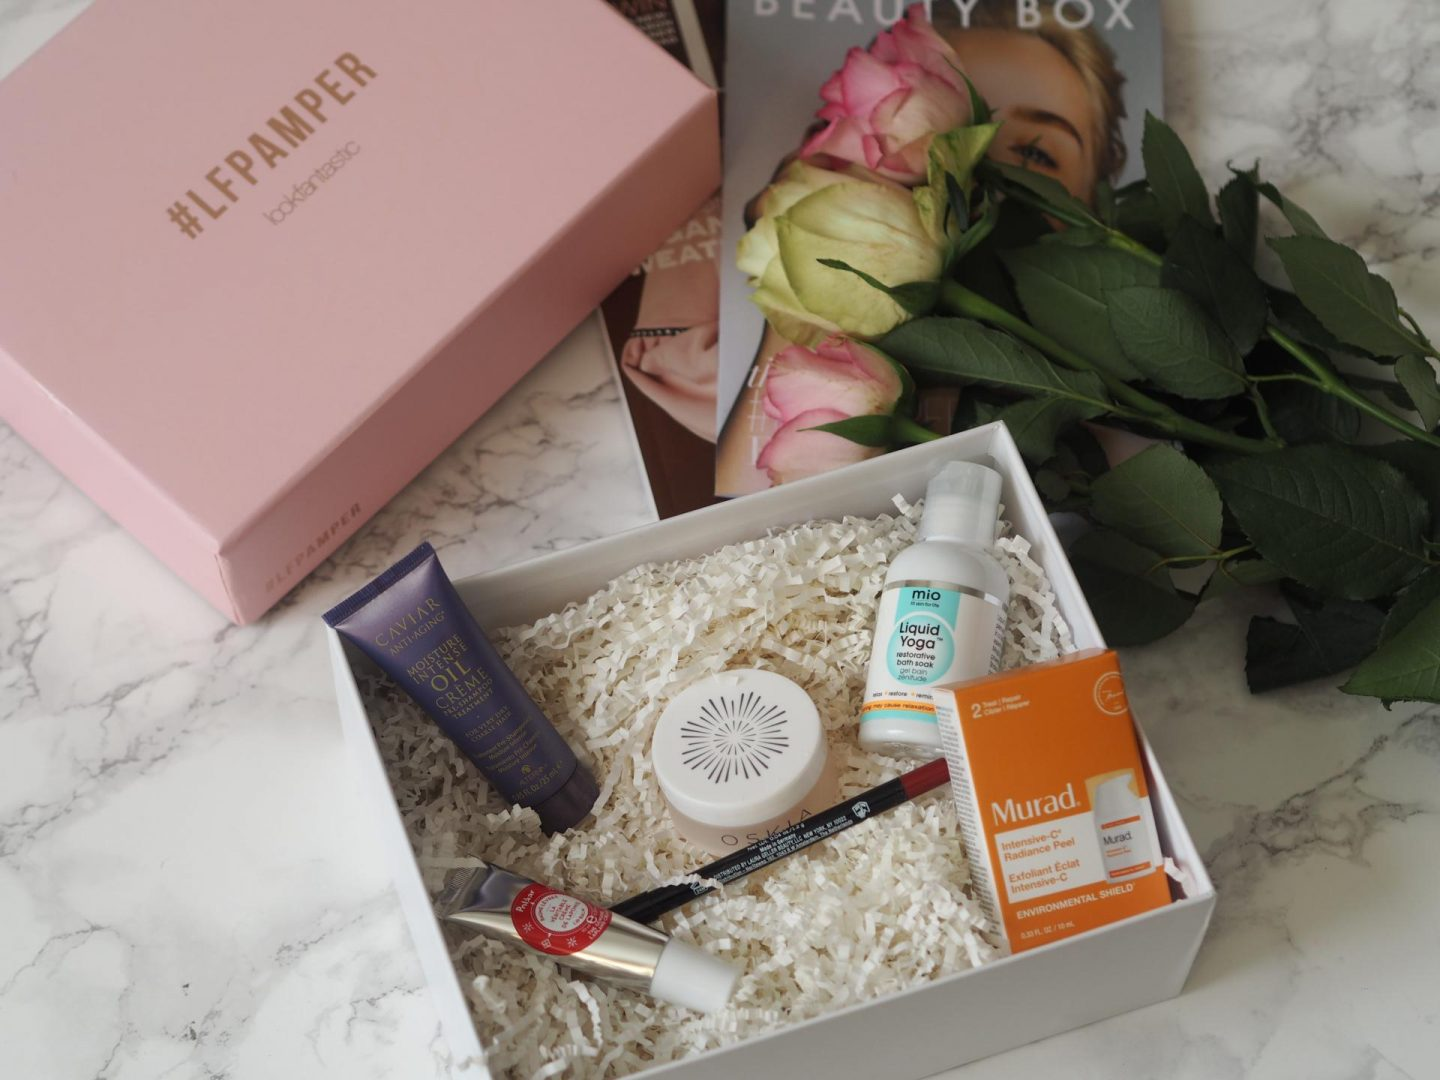 Lookfantastic #LFPamper Box flatlay